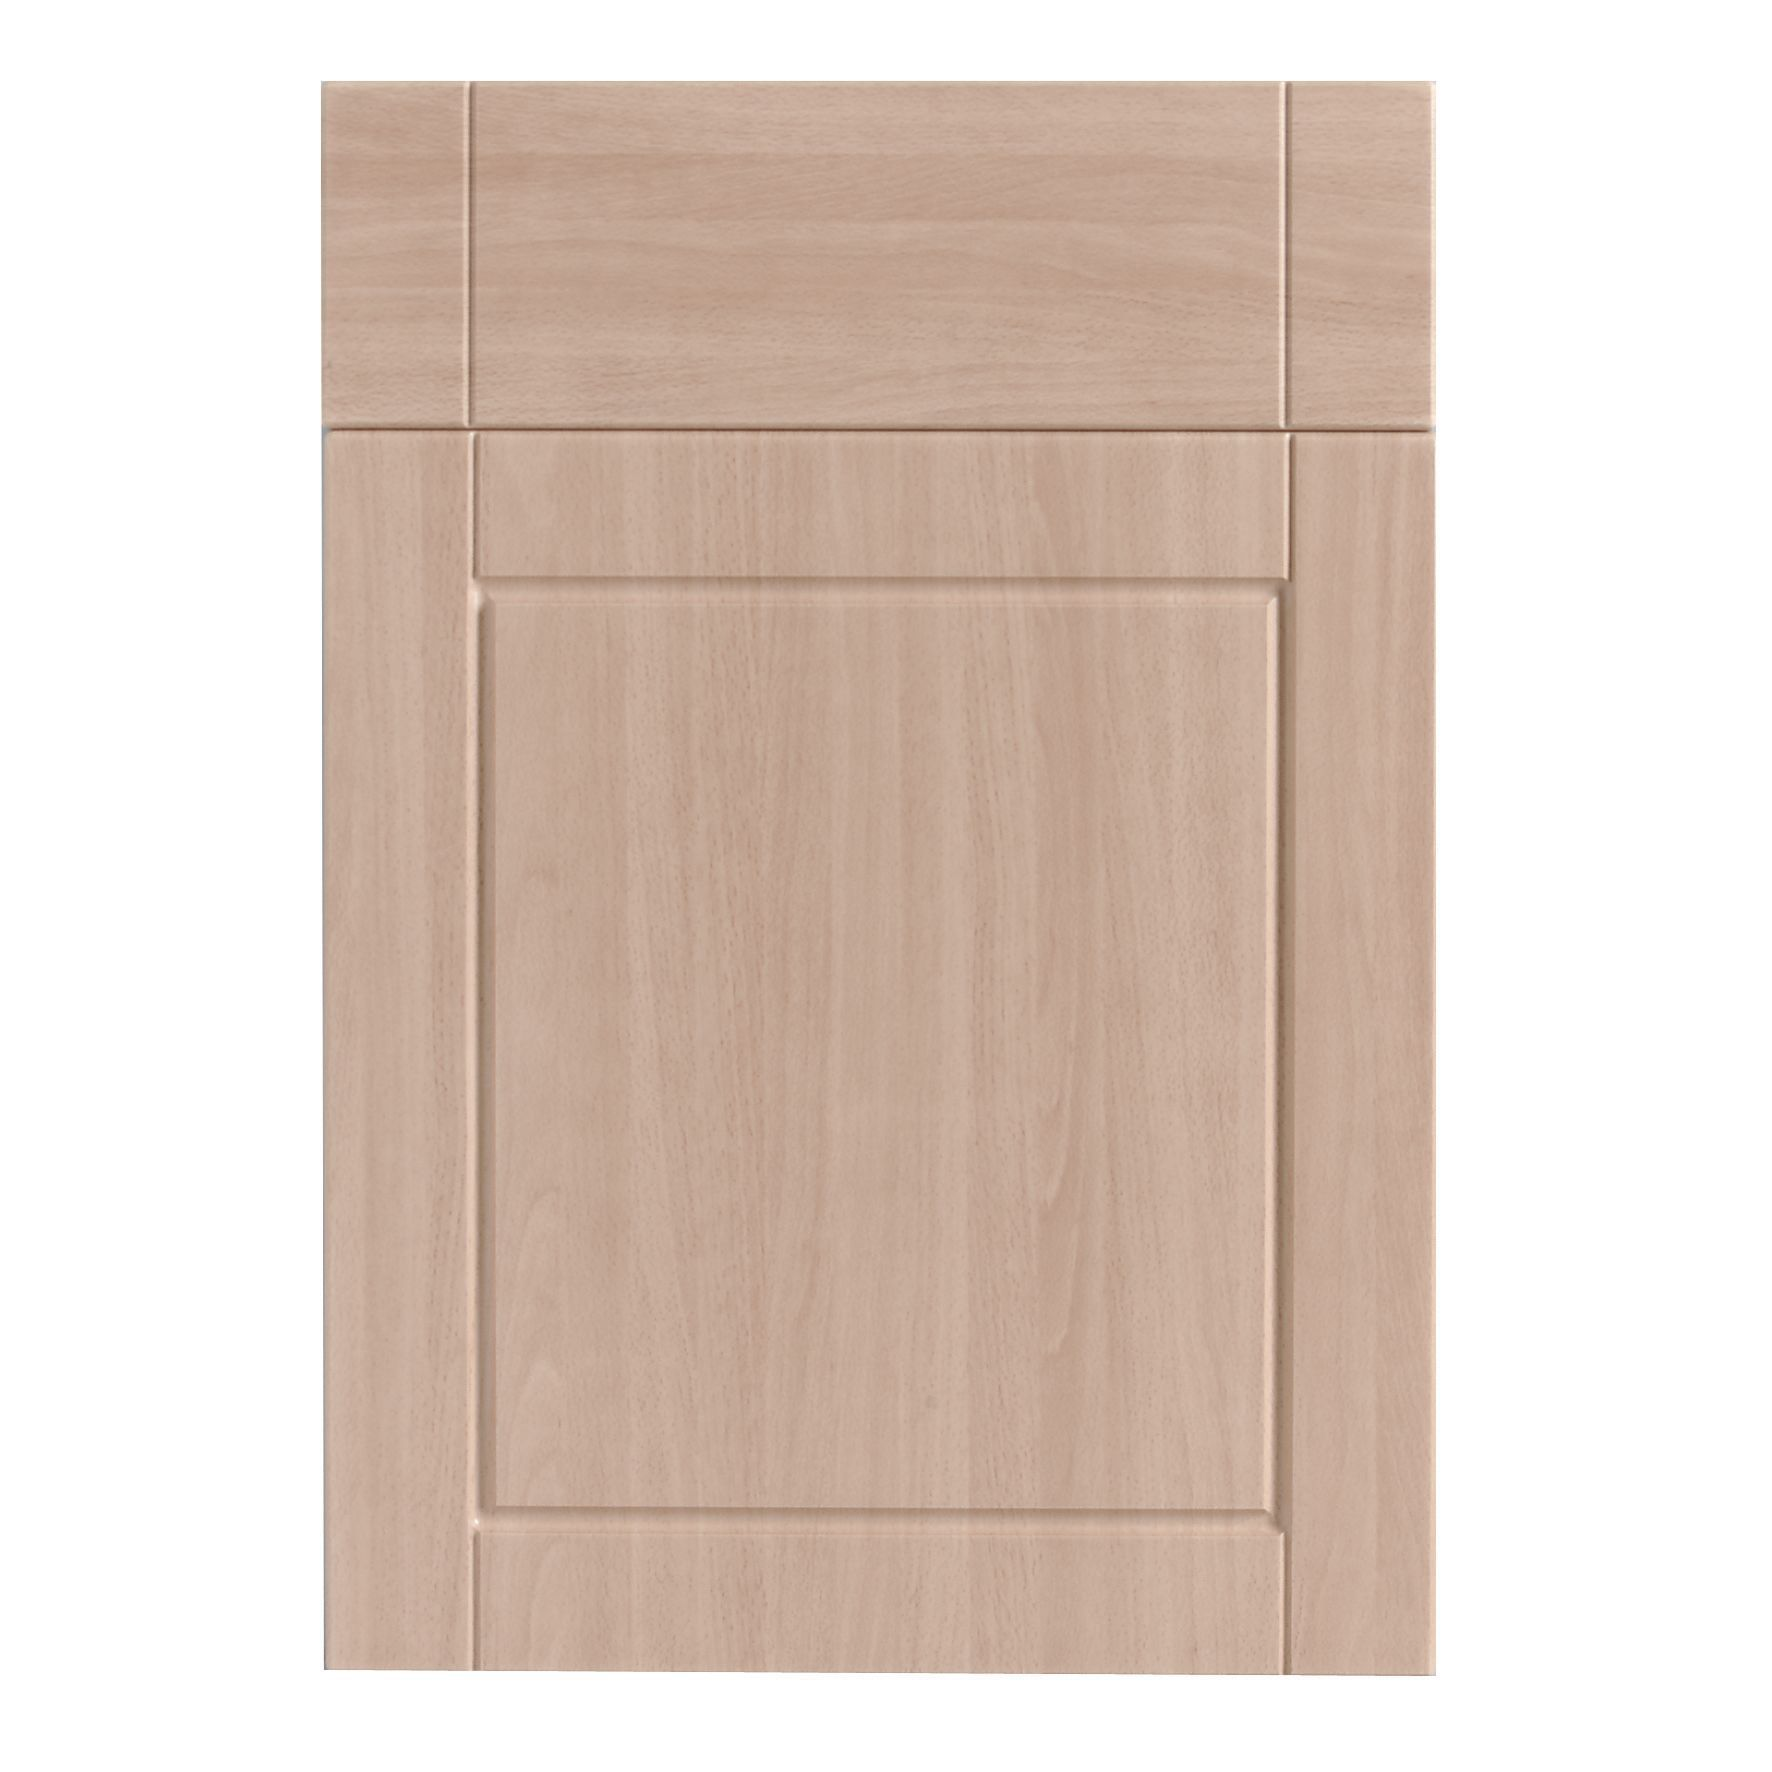 IT Kitchens Chilton Beech Effect Drawerline Door & Drawer